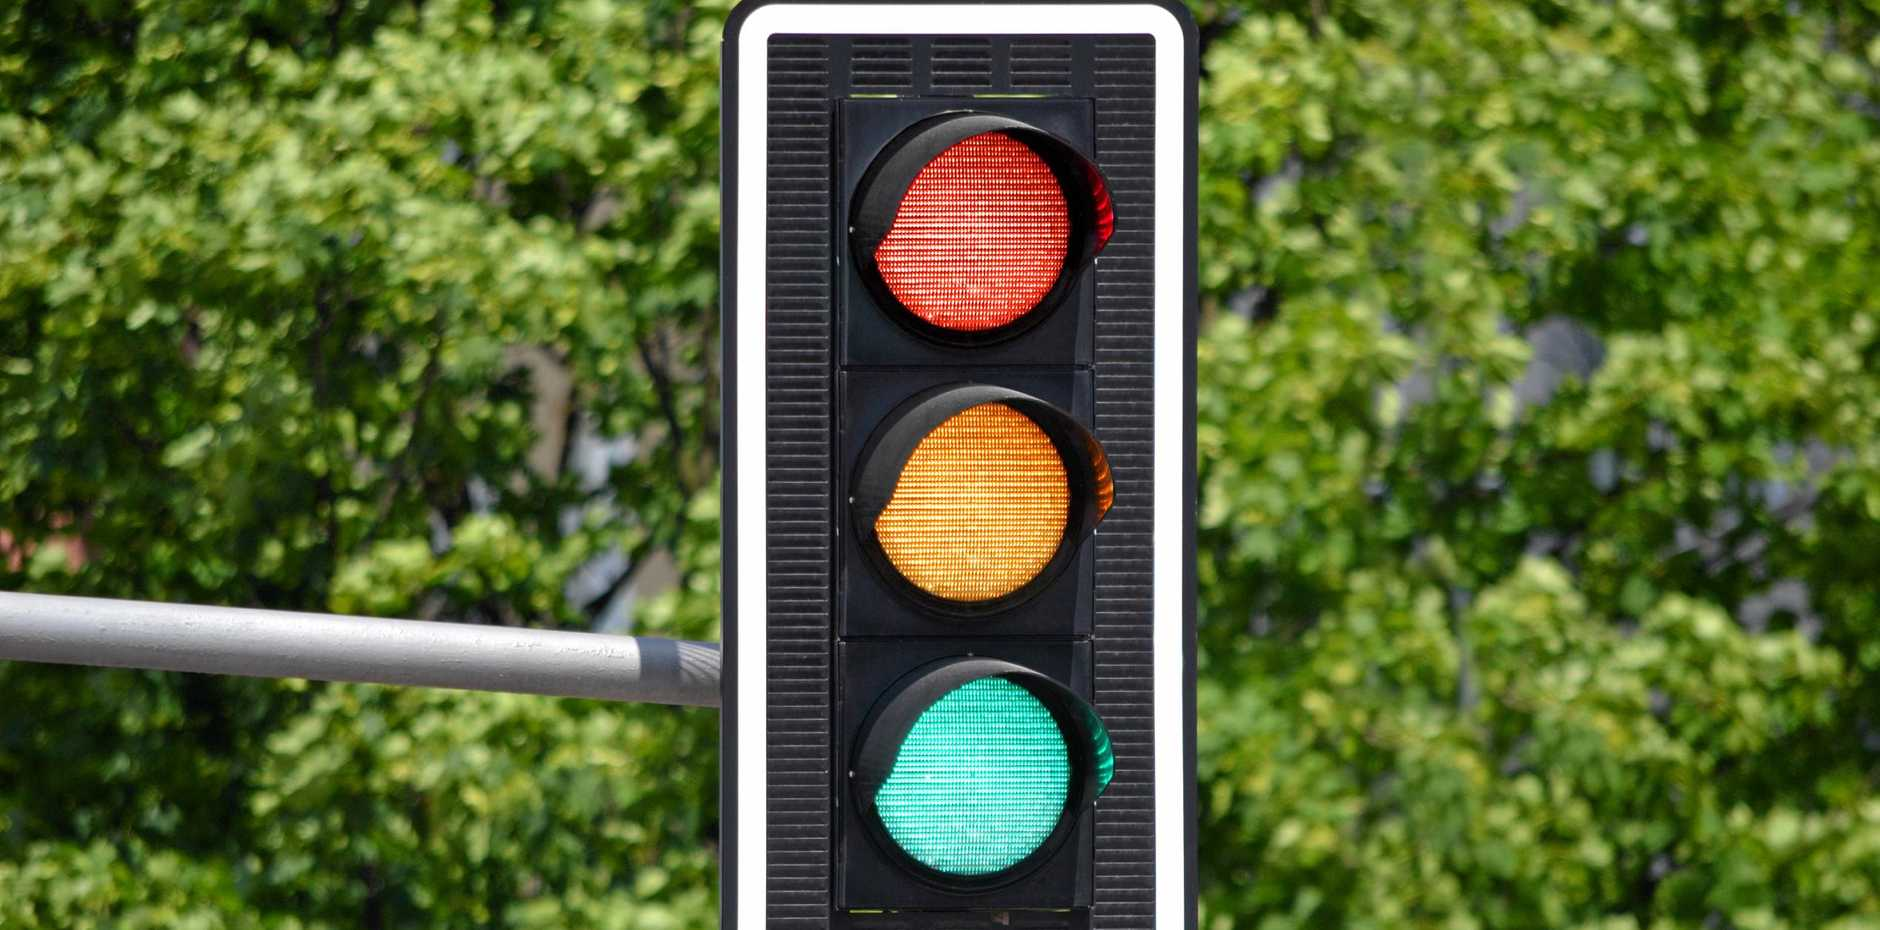 Half of Mackay's red light cameras dead for two years | CQ News